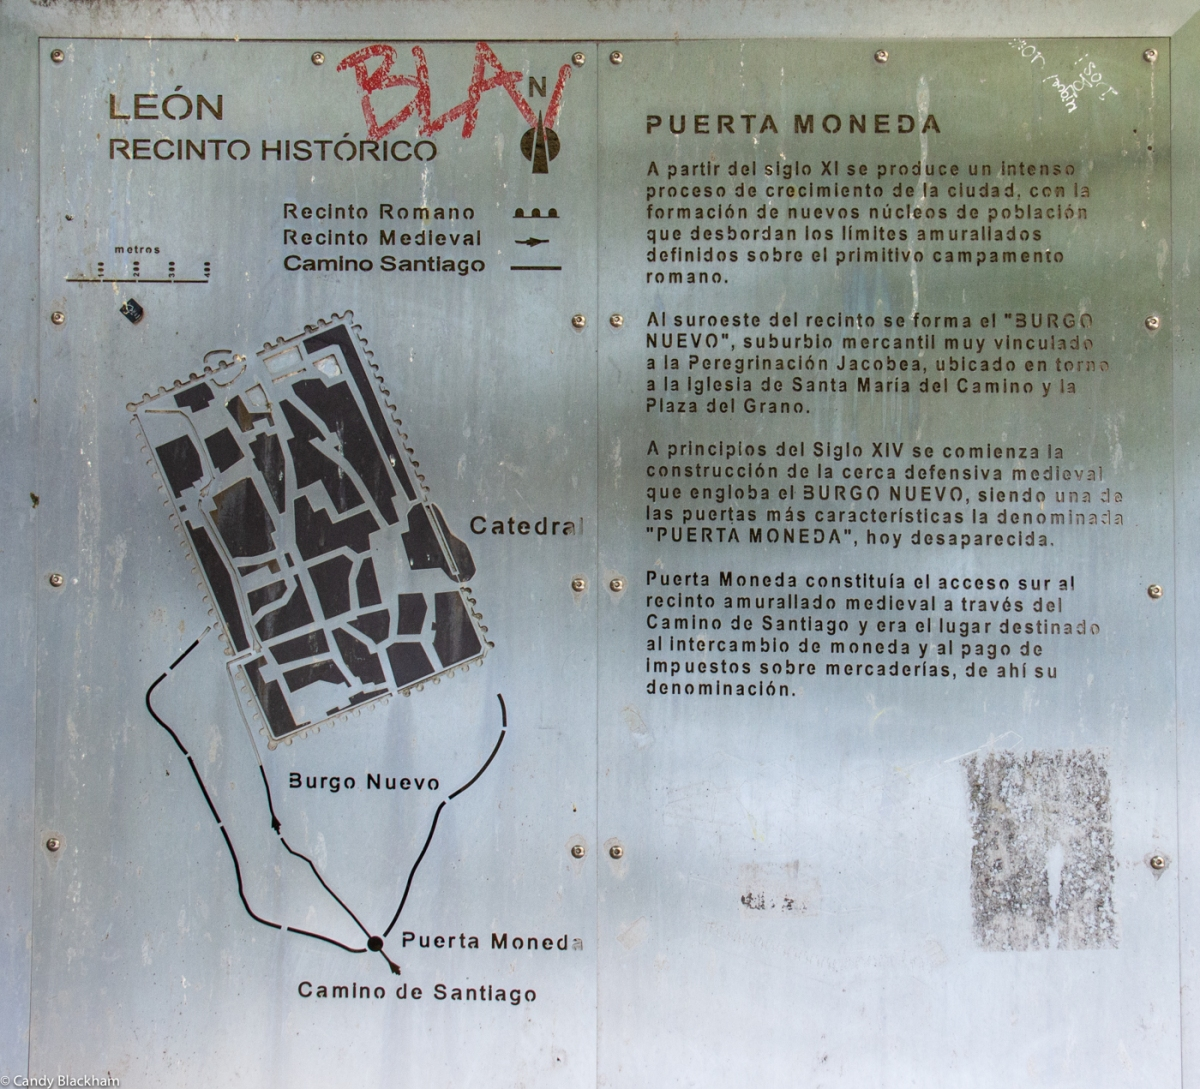 Notice board at the Puerto Moneda, showing the Roman Walls, and the later Mediaeval Walls